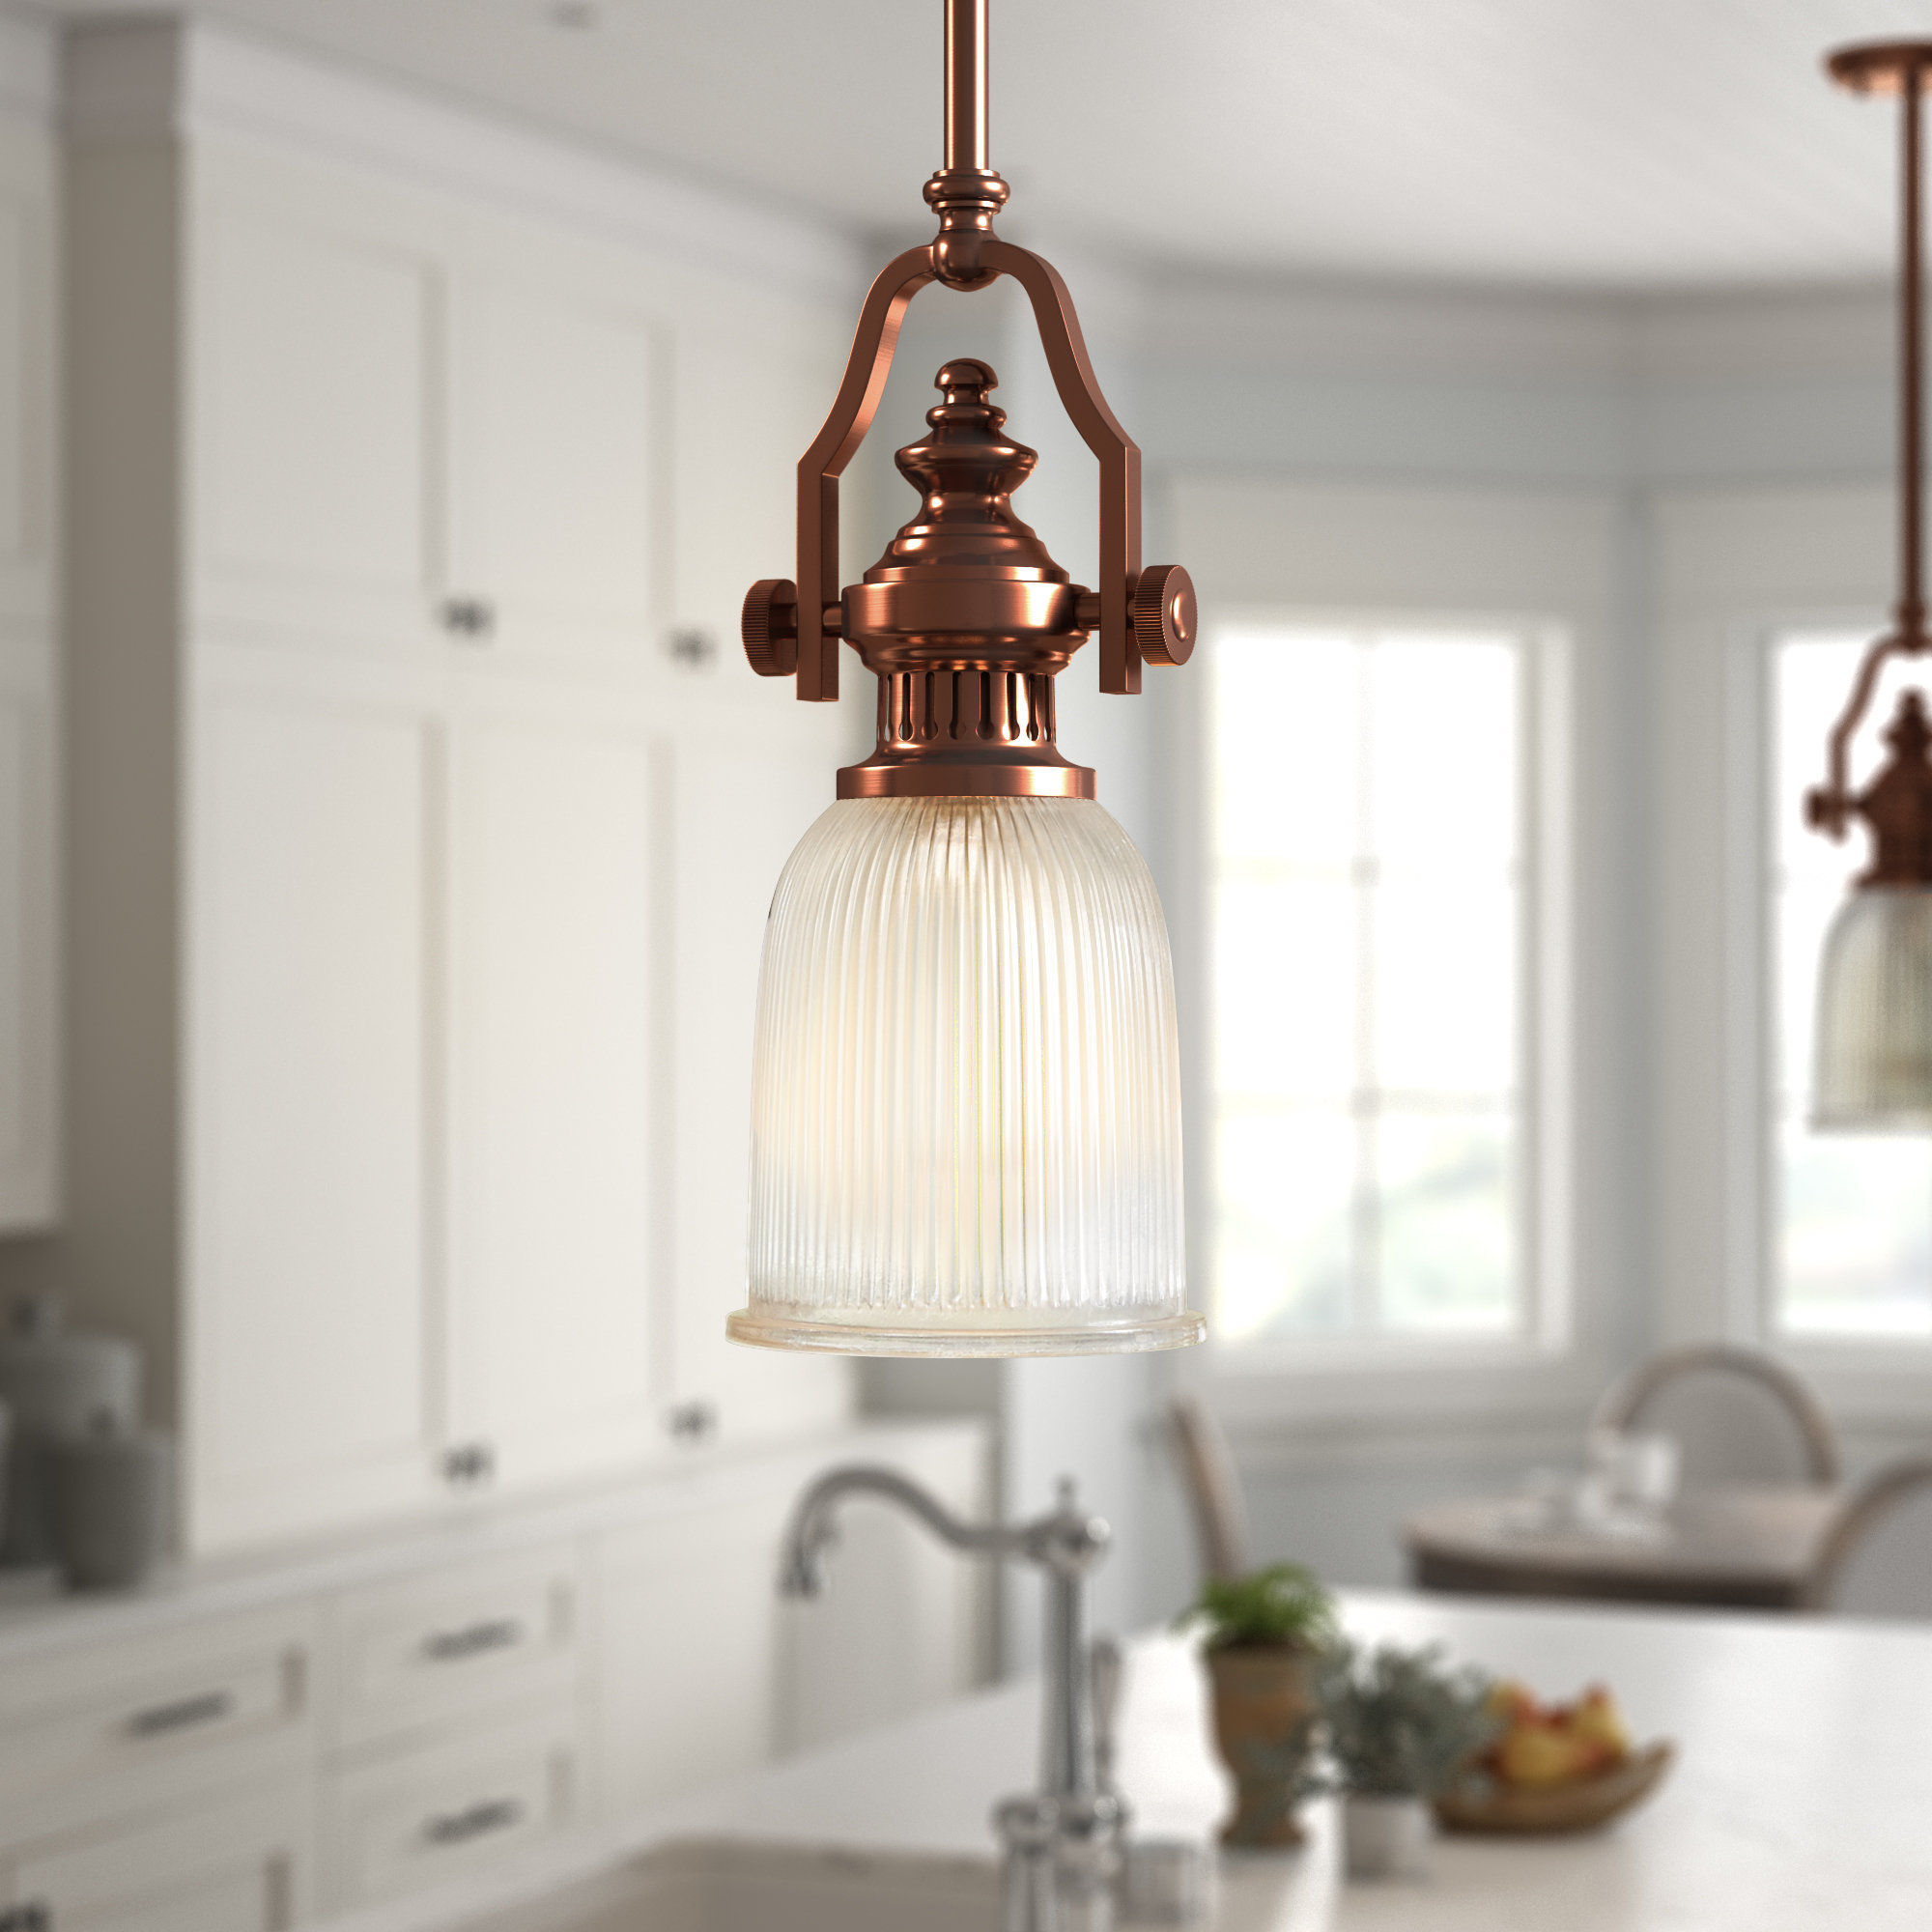 Recent Birch Lane Erico 1 Light Single Bell Pendant & Reviews Pertaining To Goldie 1 Light Single Bell Pendants (Gallery 10 of 20)